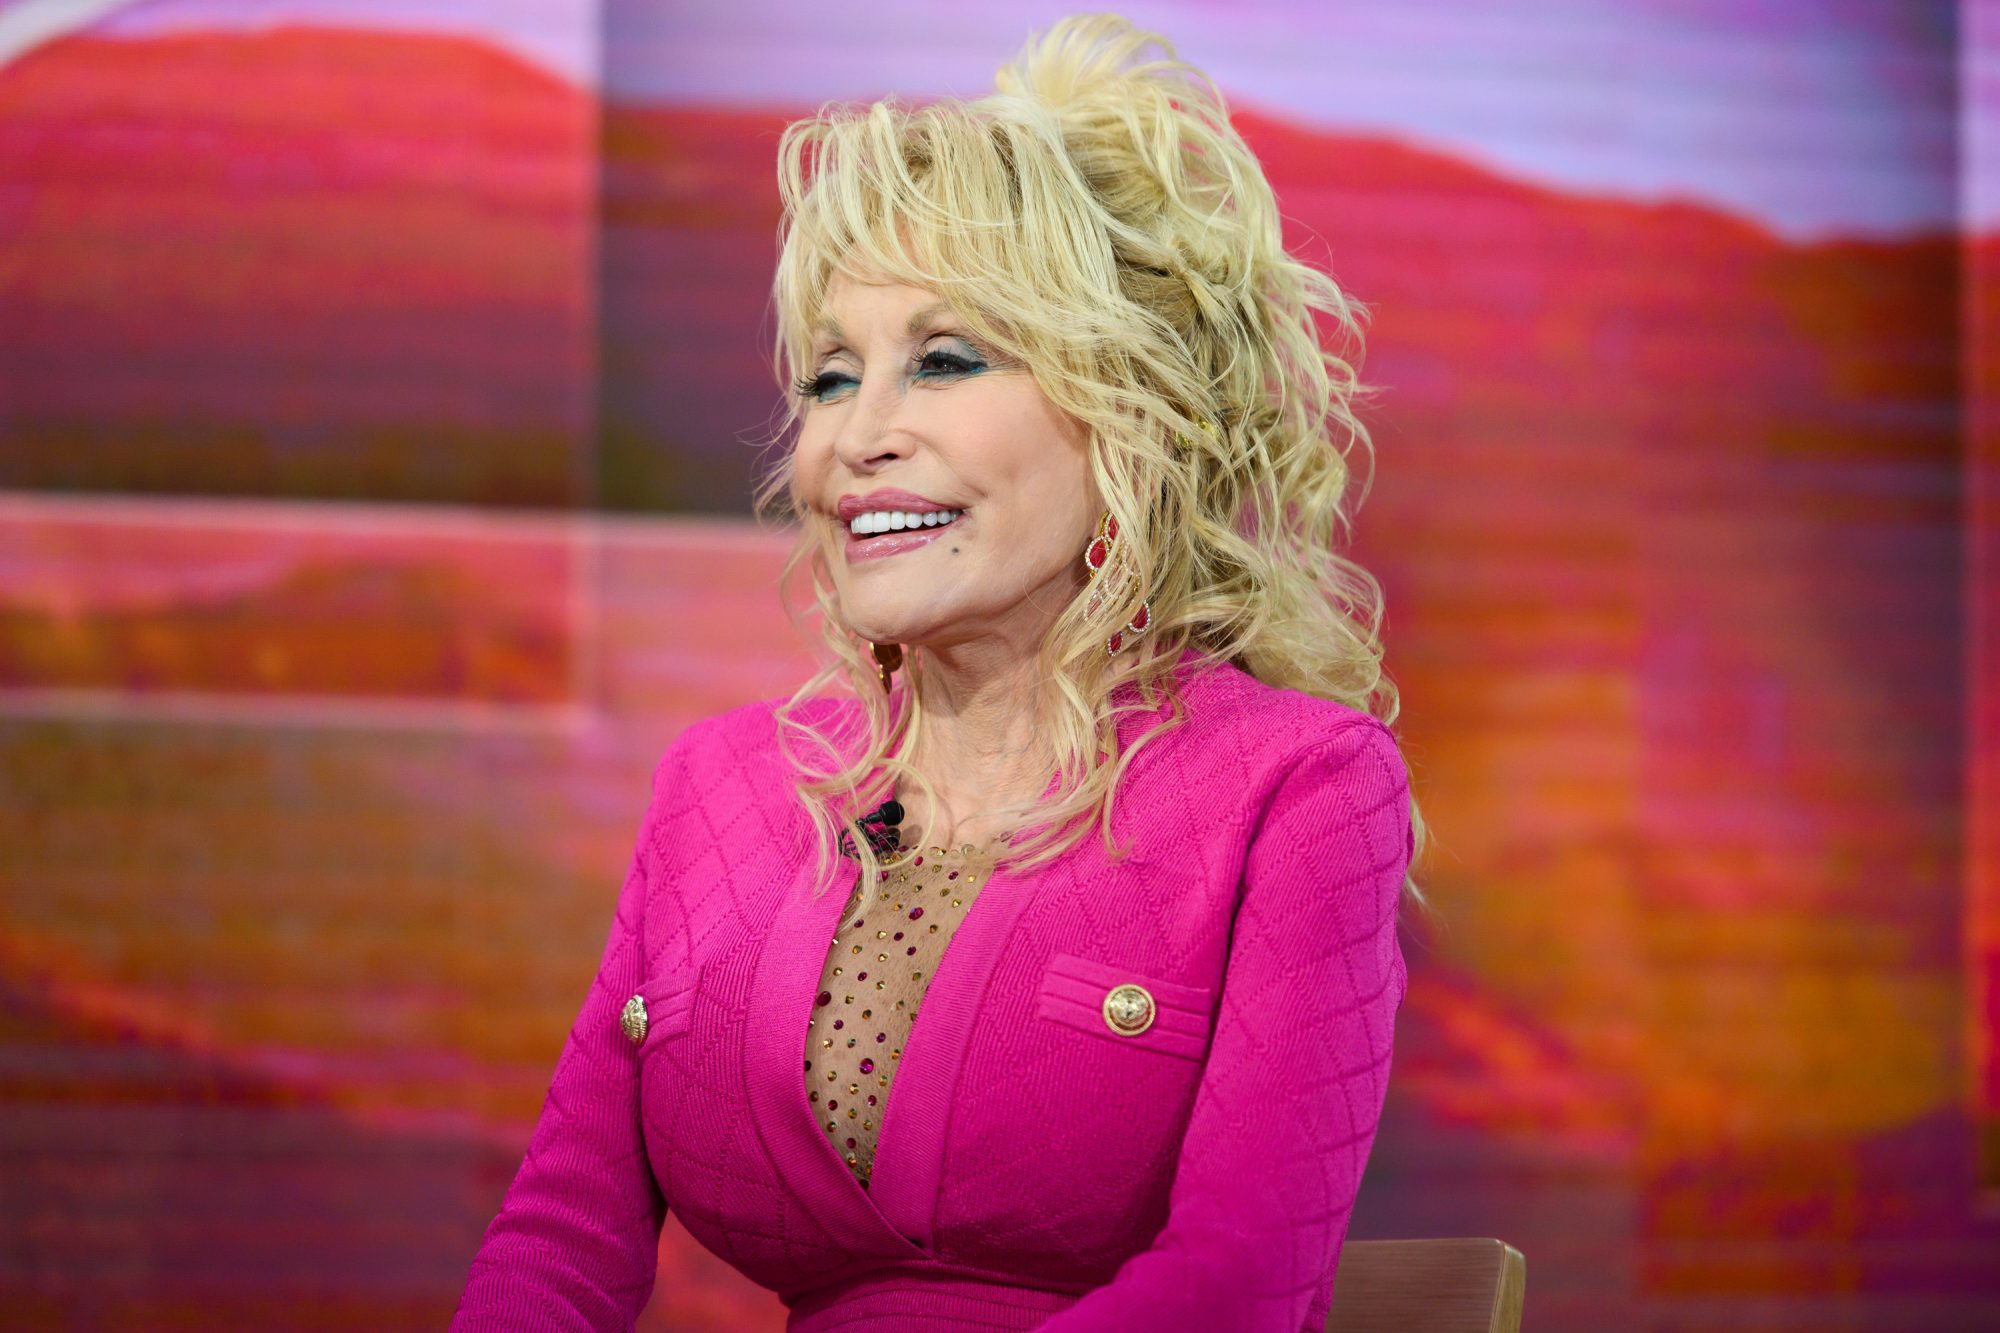 Dolly Parton in Pink